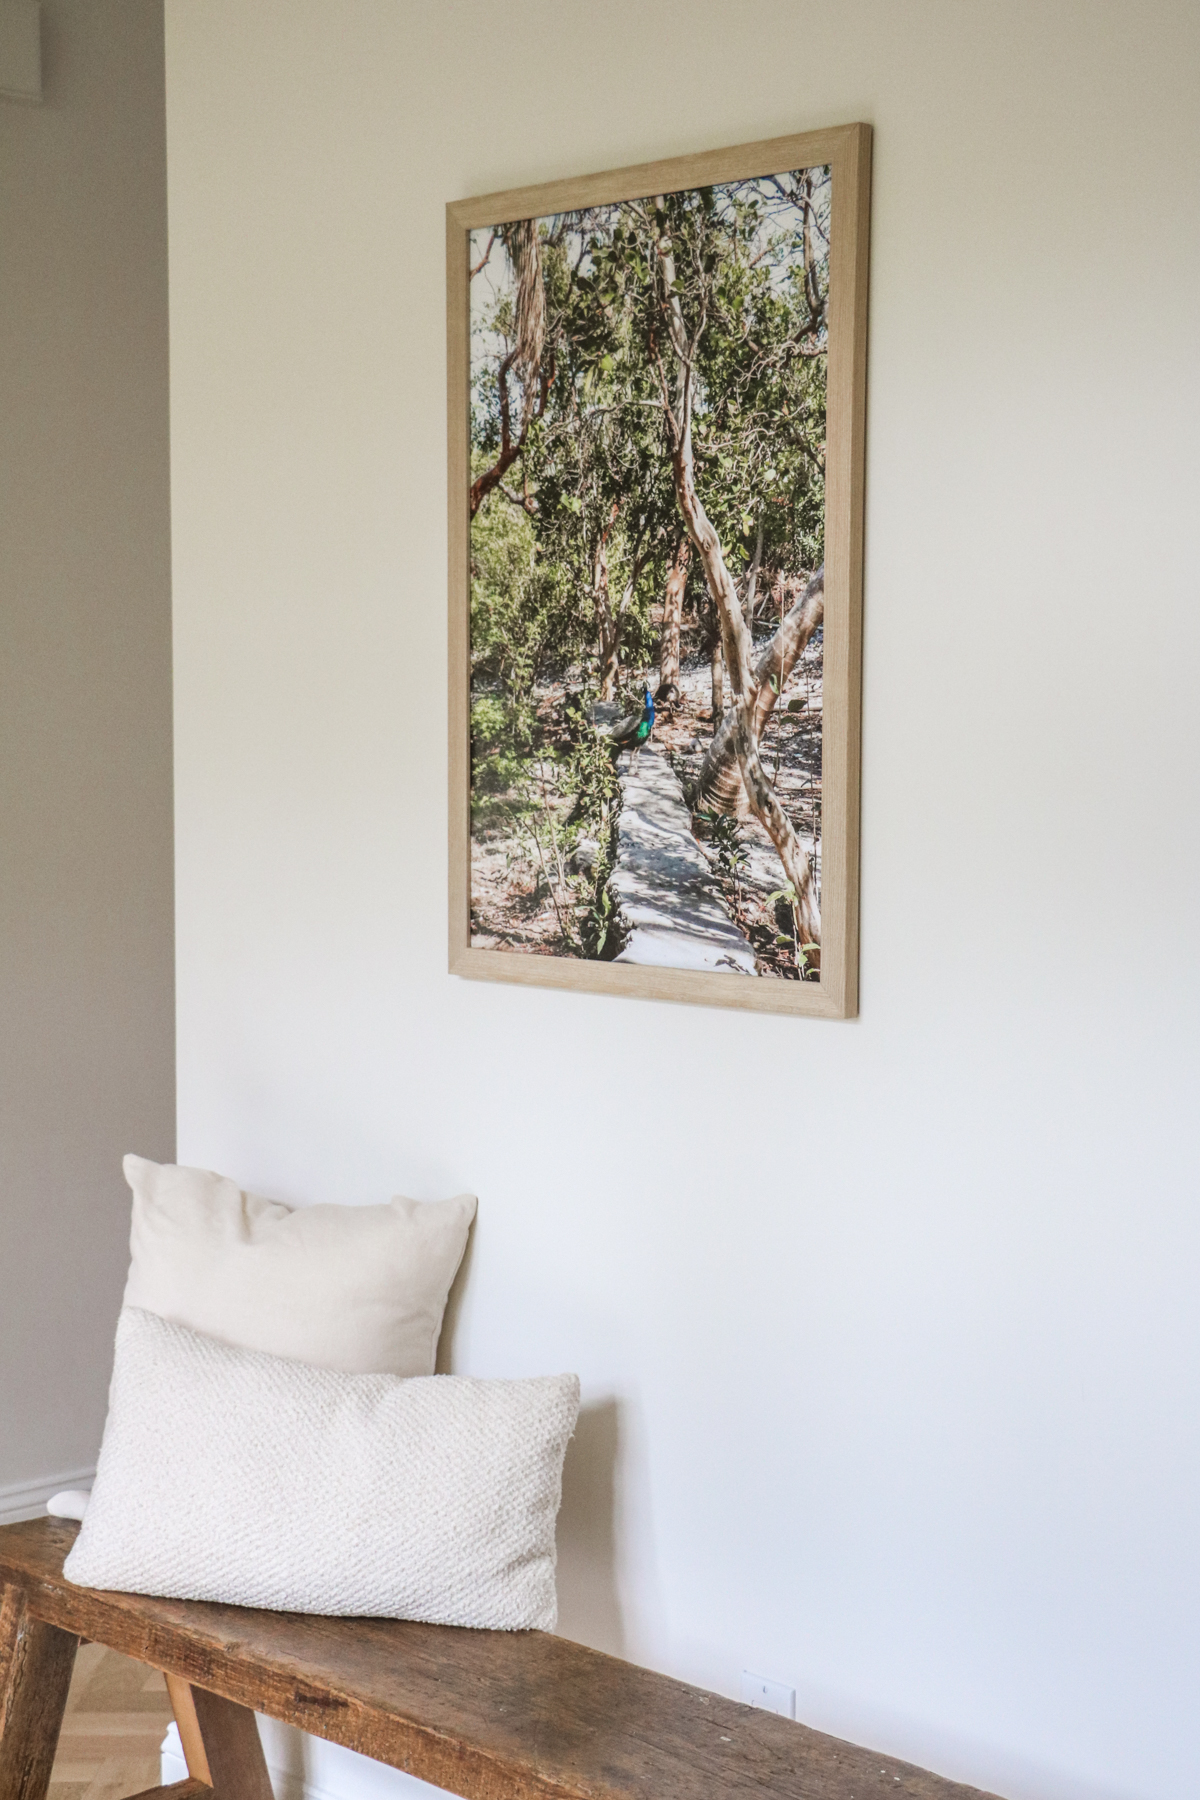 Our Entryway Renovation Reveal | root + dwell